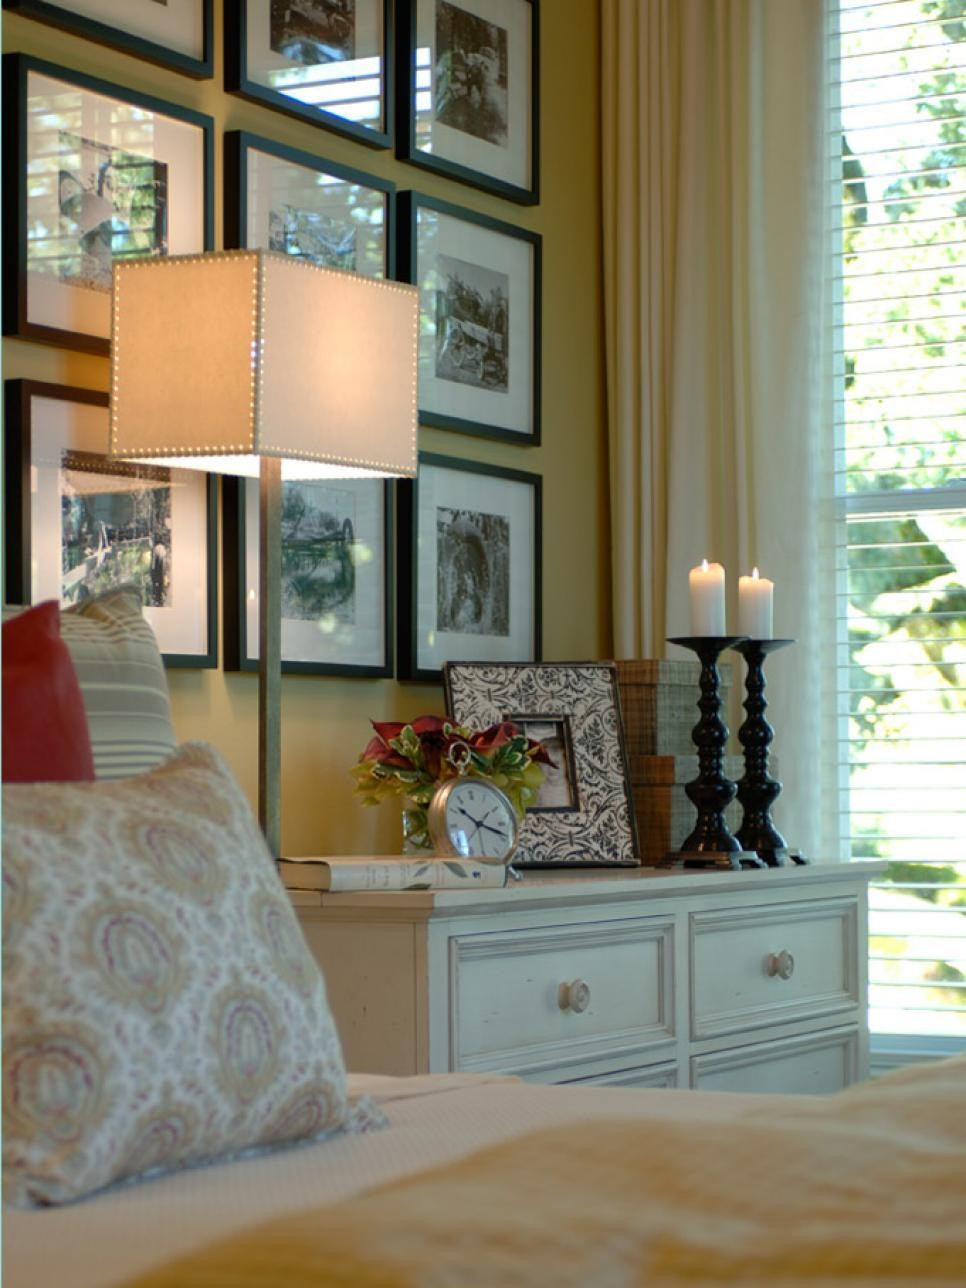 Ways Display Bedroom Frames Hgtv